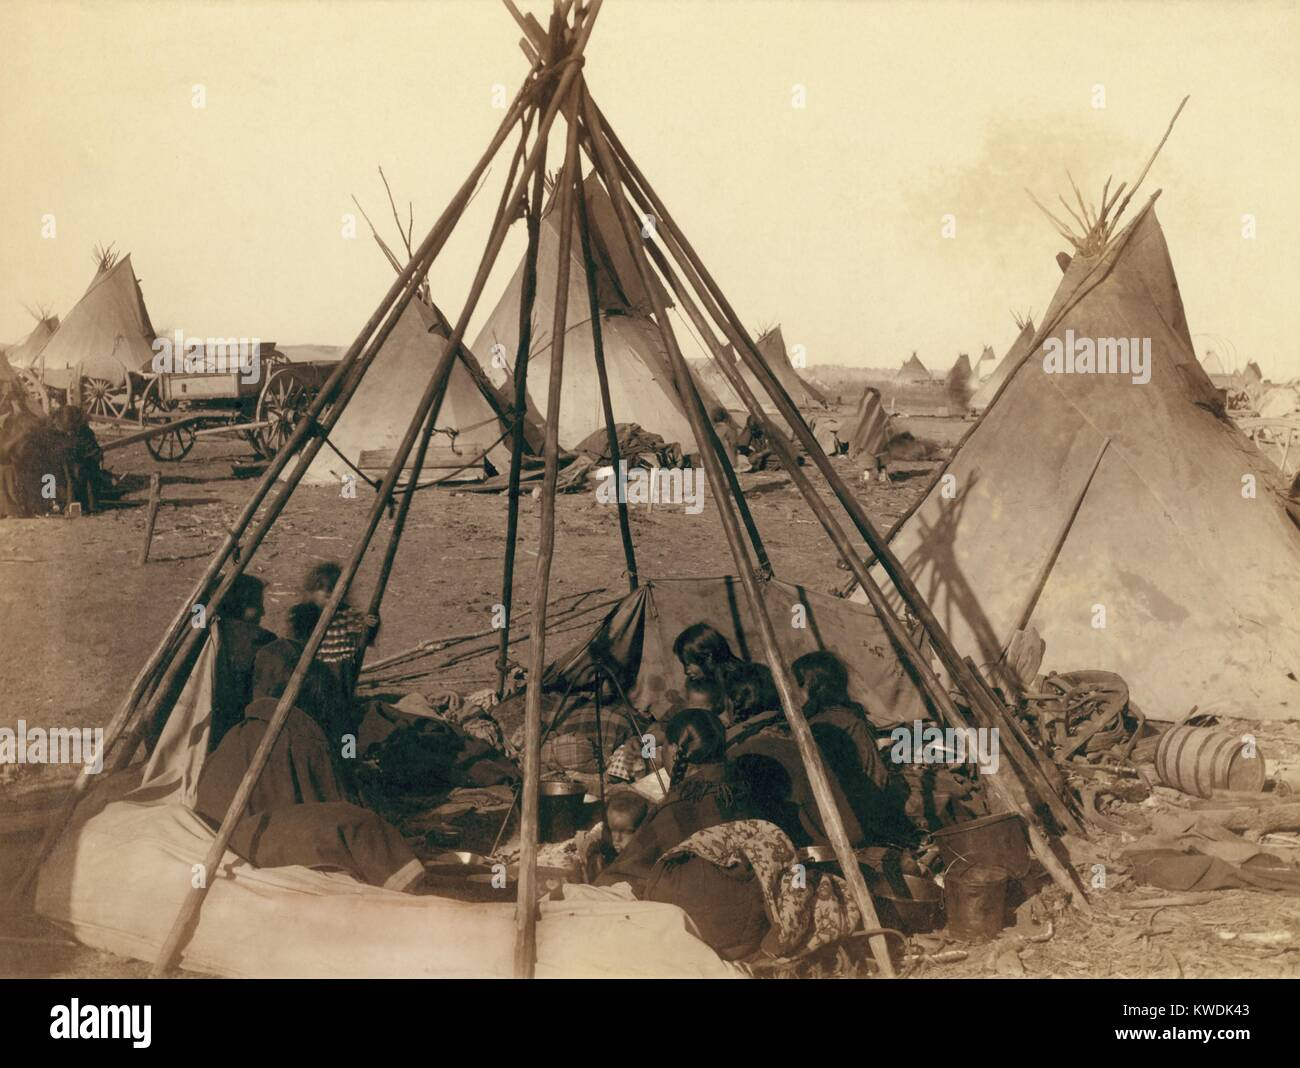 Oglala Sioux women and children inside an uncovered tipi frame near Pine Ridge Agency, Jan. 1891. Beyond are other Stock Photo